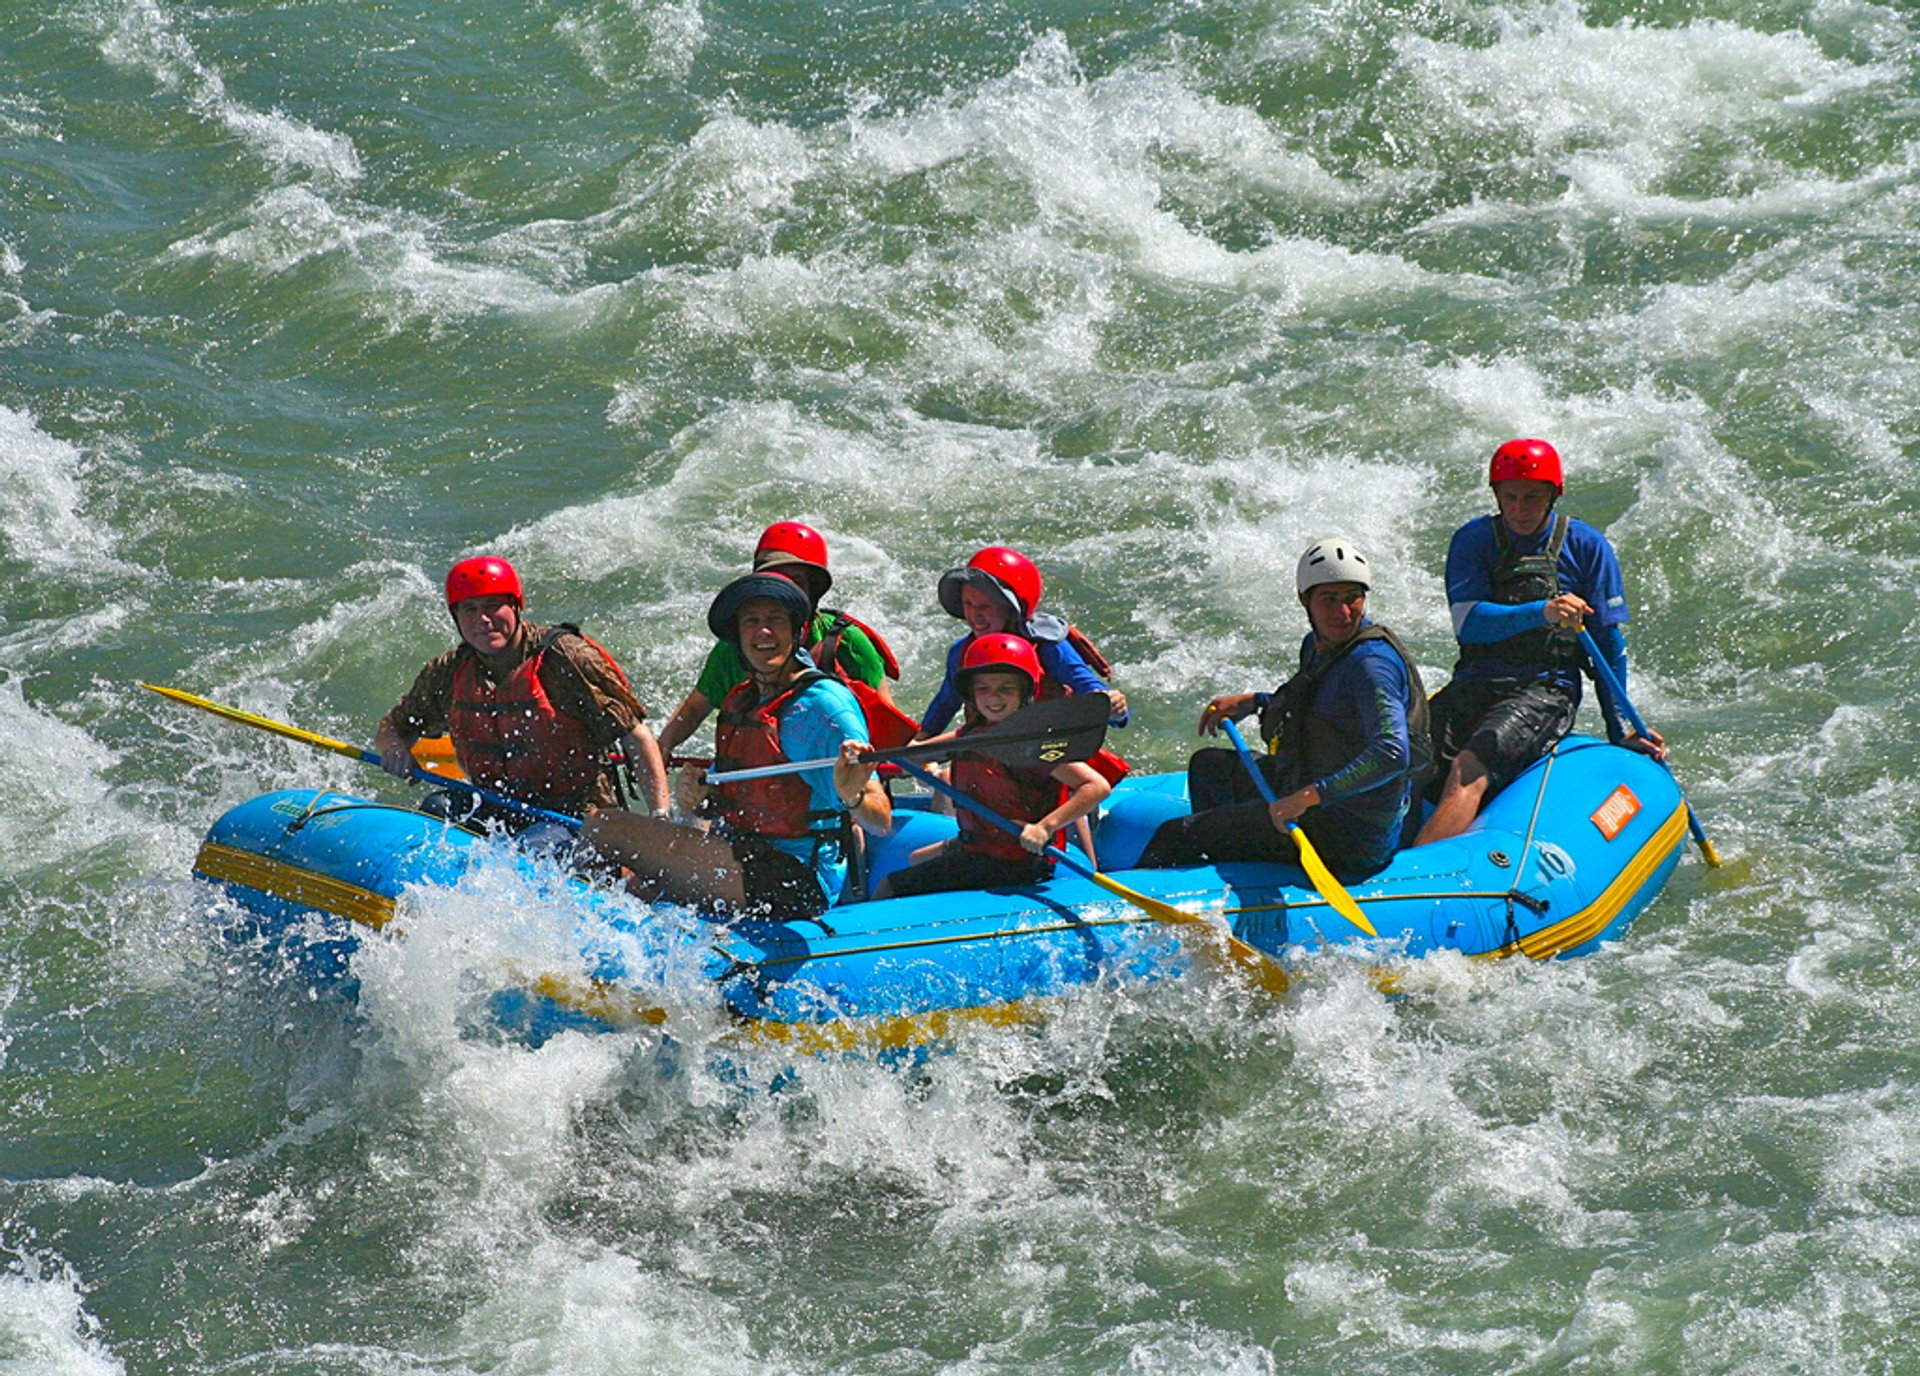 Rafting in Costa Rica 2020 - Best Time